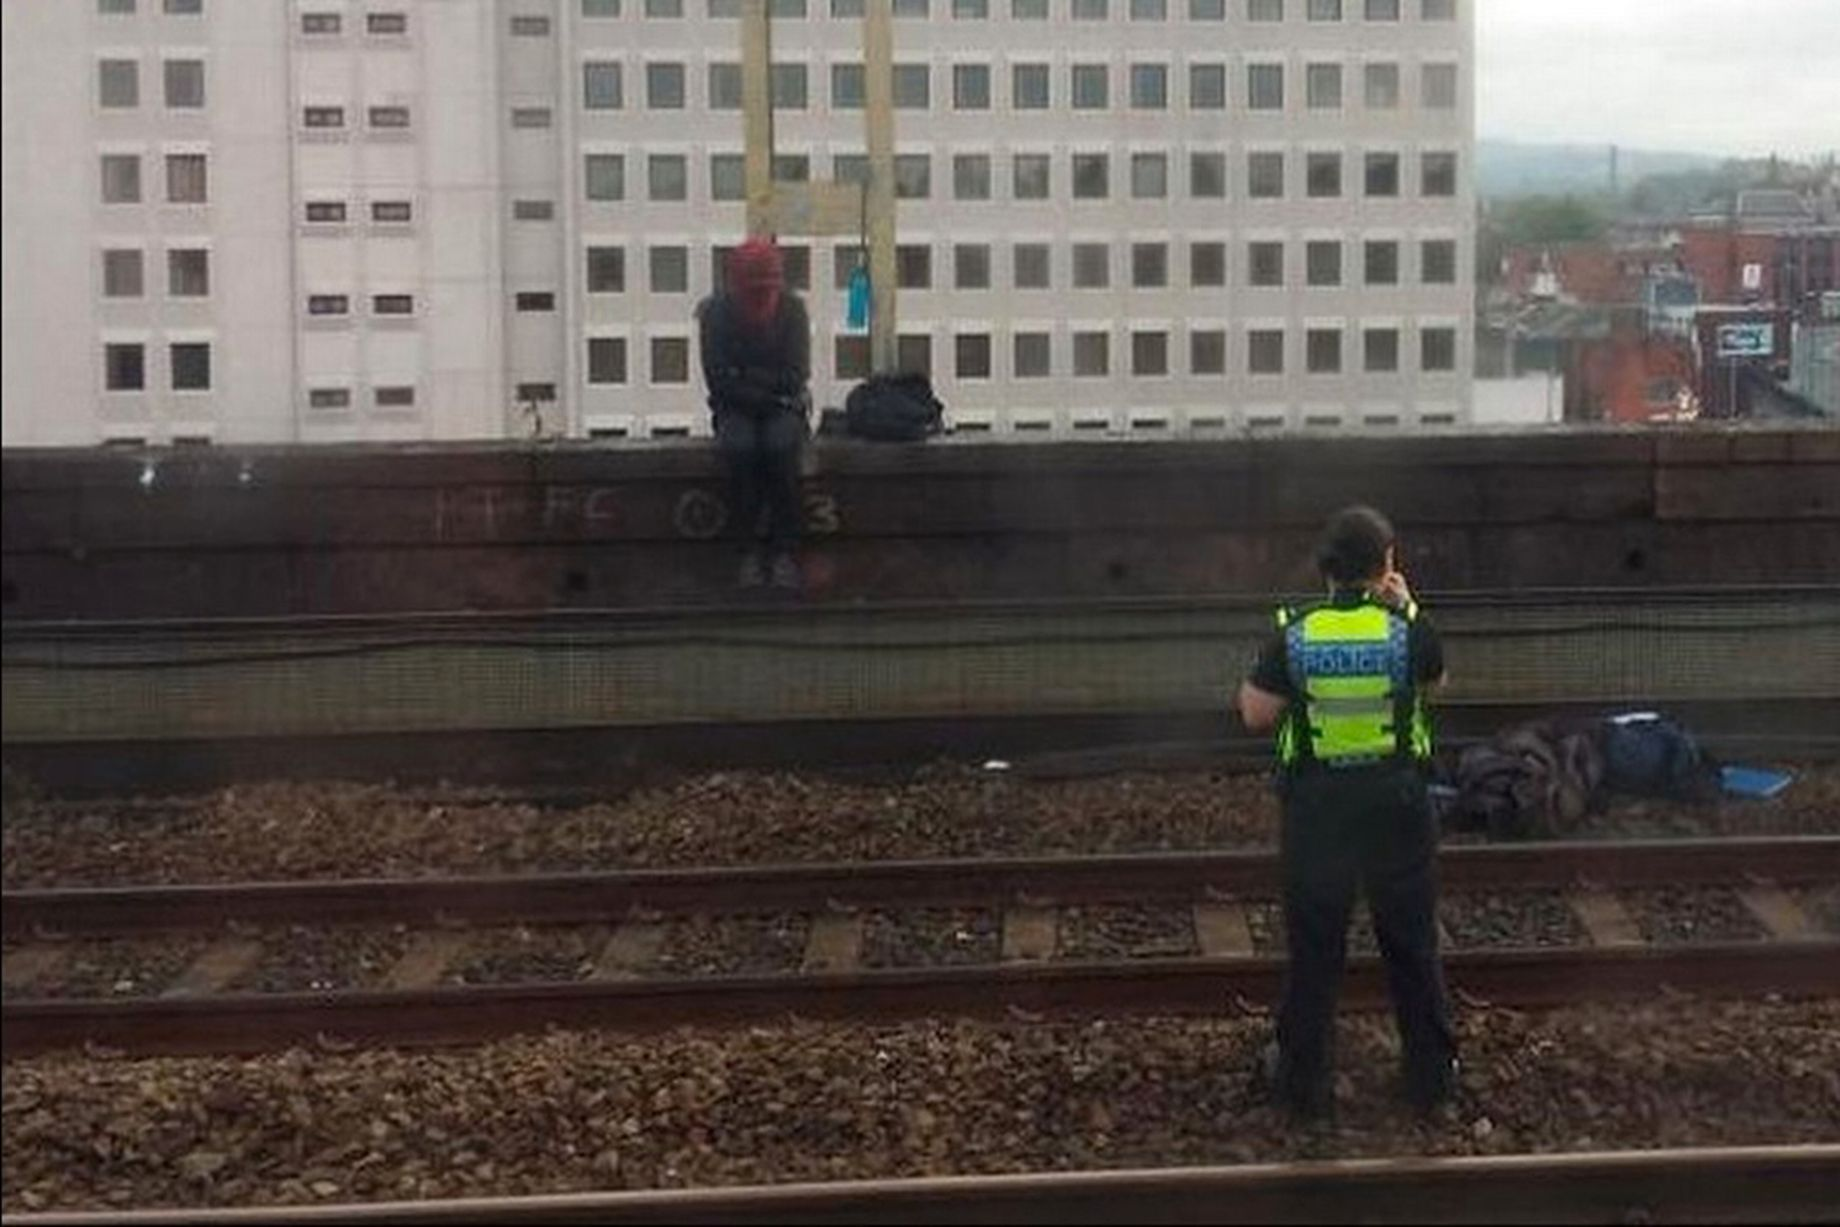 Trains-halted-through-Stockport-after-woman-seen-on-viaduct